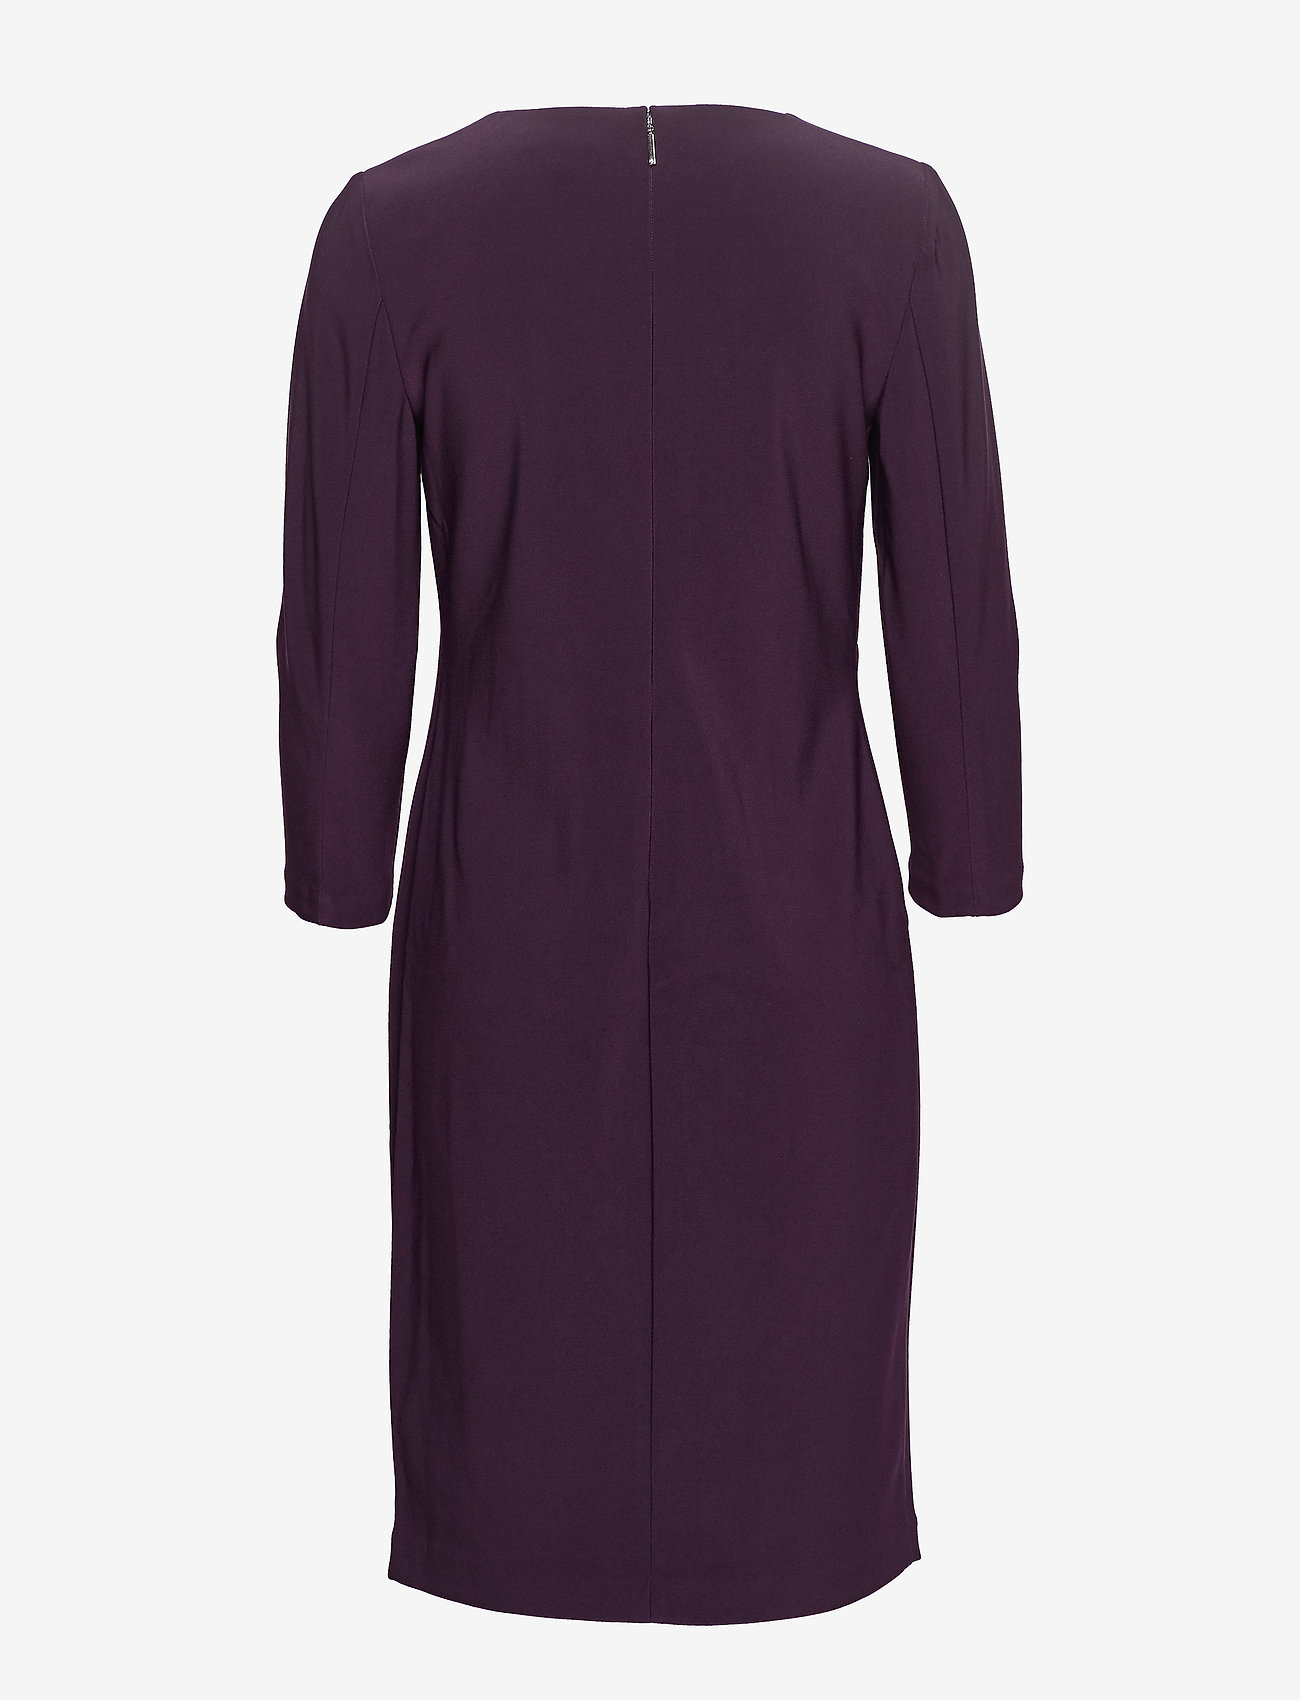 Lauren Ralph Lauren - BONDED MJ-DRESS W/ TRIM - midimekot - raisin